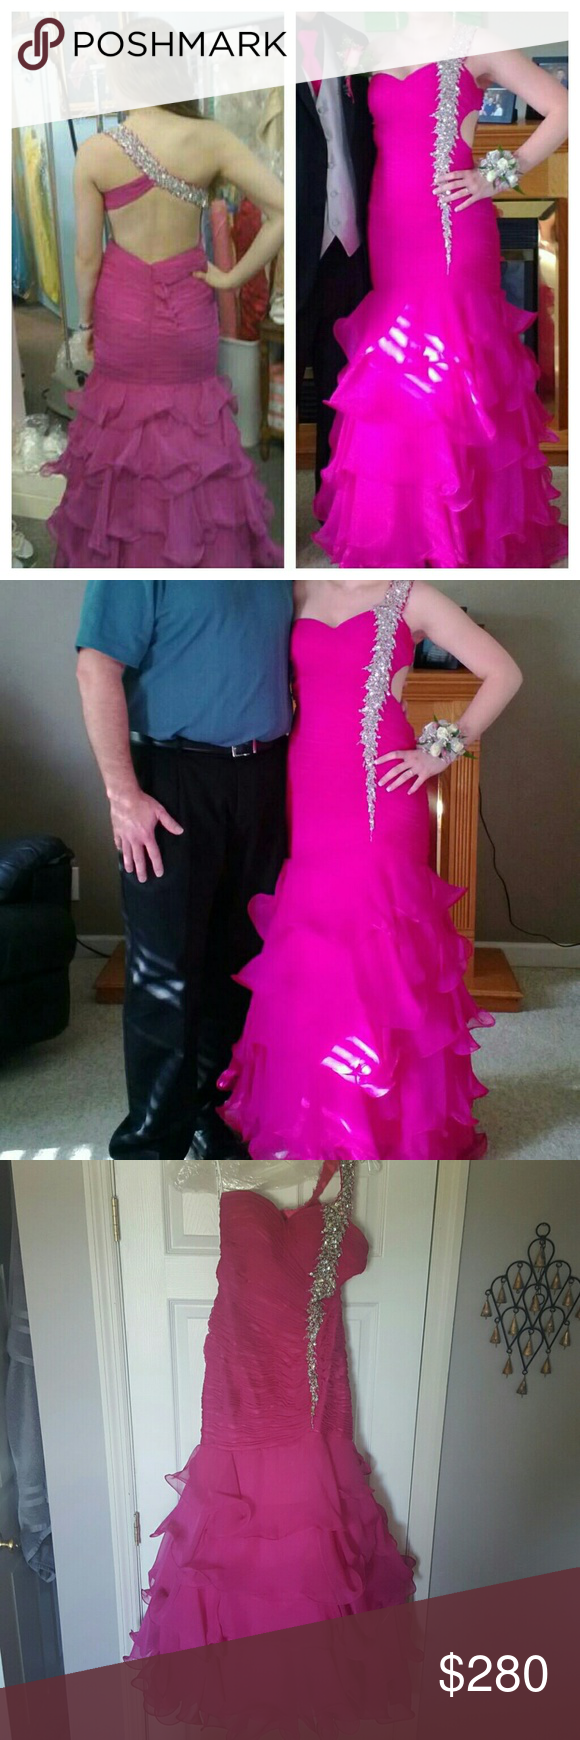 Pink Prom Dress Super cute, open back. Really stunning when walking around in it due to all the ruffles on the bottom! Loved wearing it!! Partytime Dresses Prom